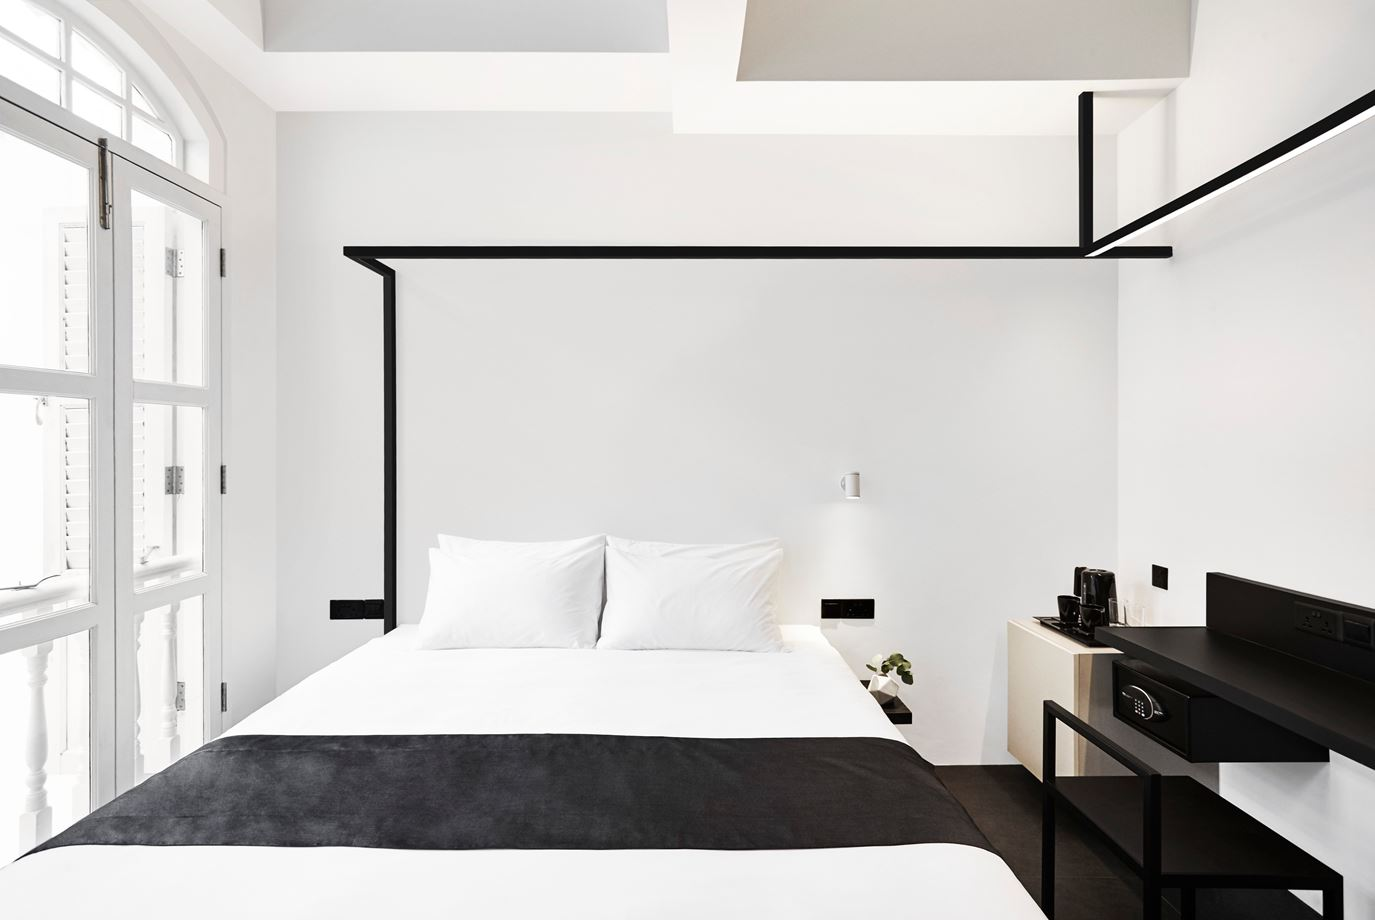 1560234223 218 try a minimalist bedroom design for less stress and a good nights sleep - Try a Minimalist Bedroom Design for Less Stress and a Good Night's Sleep